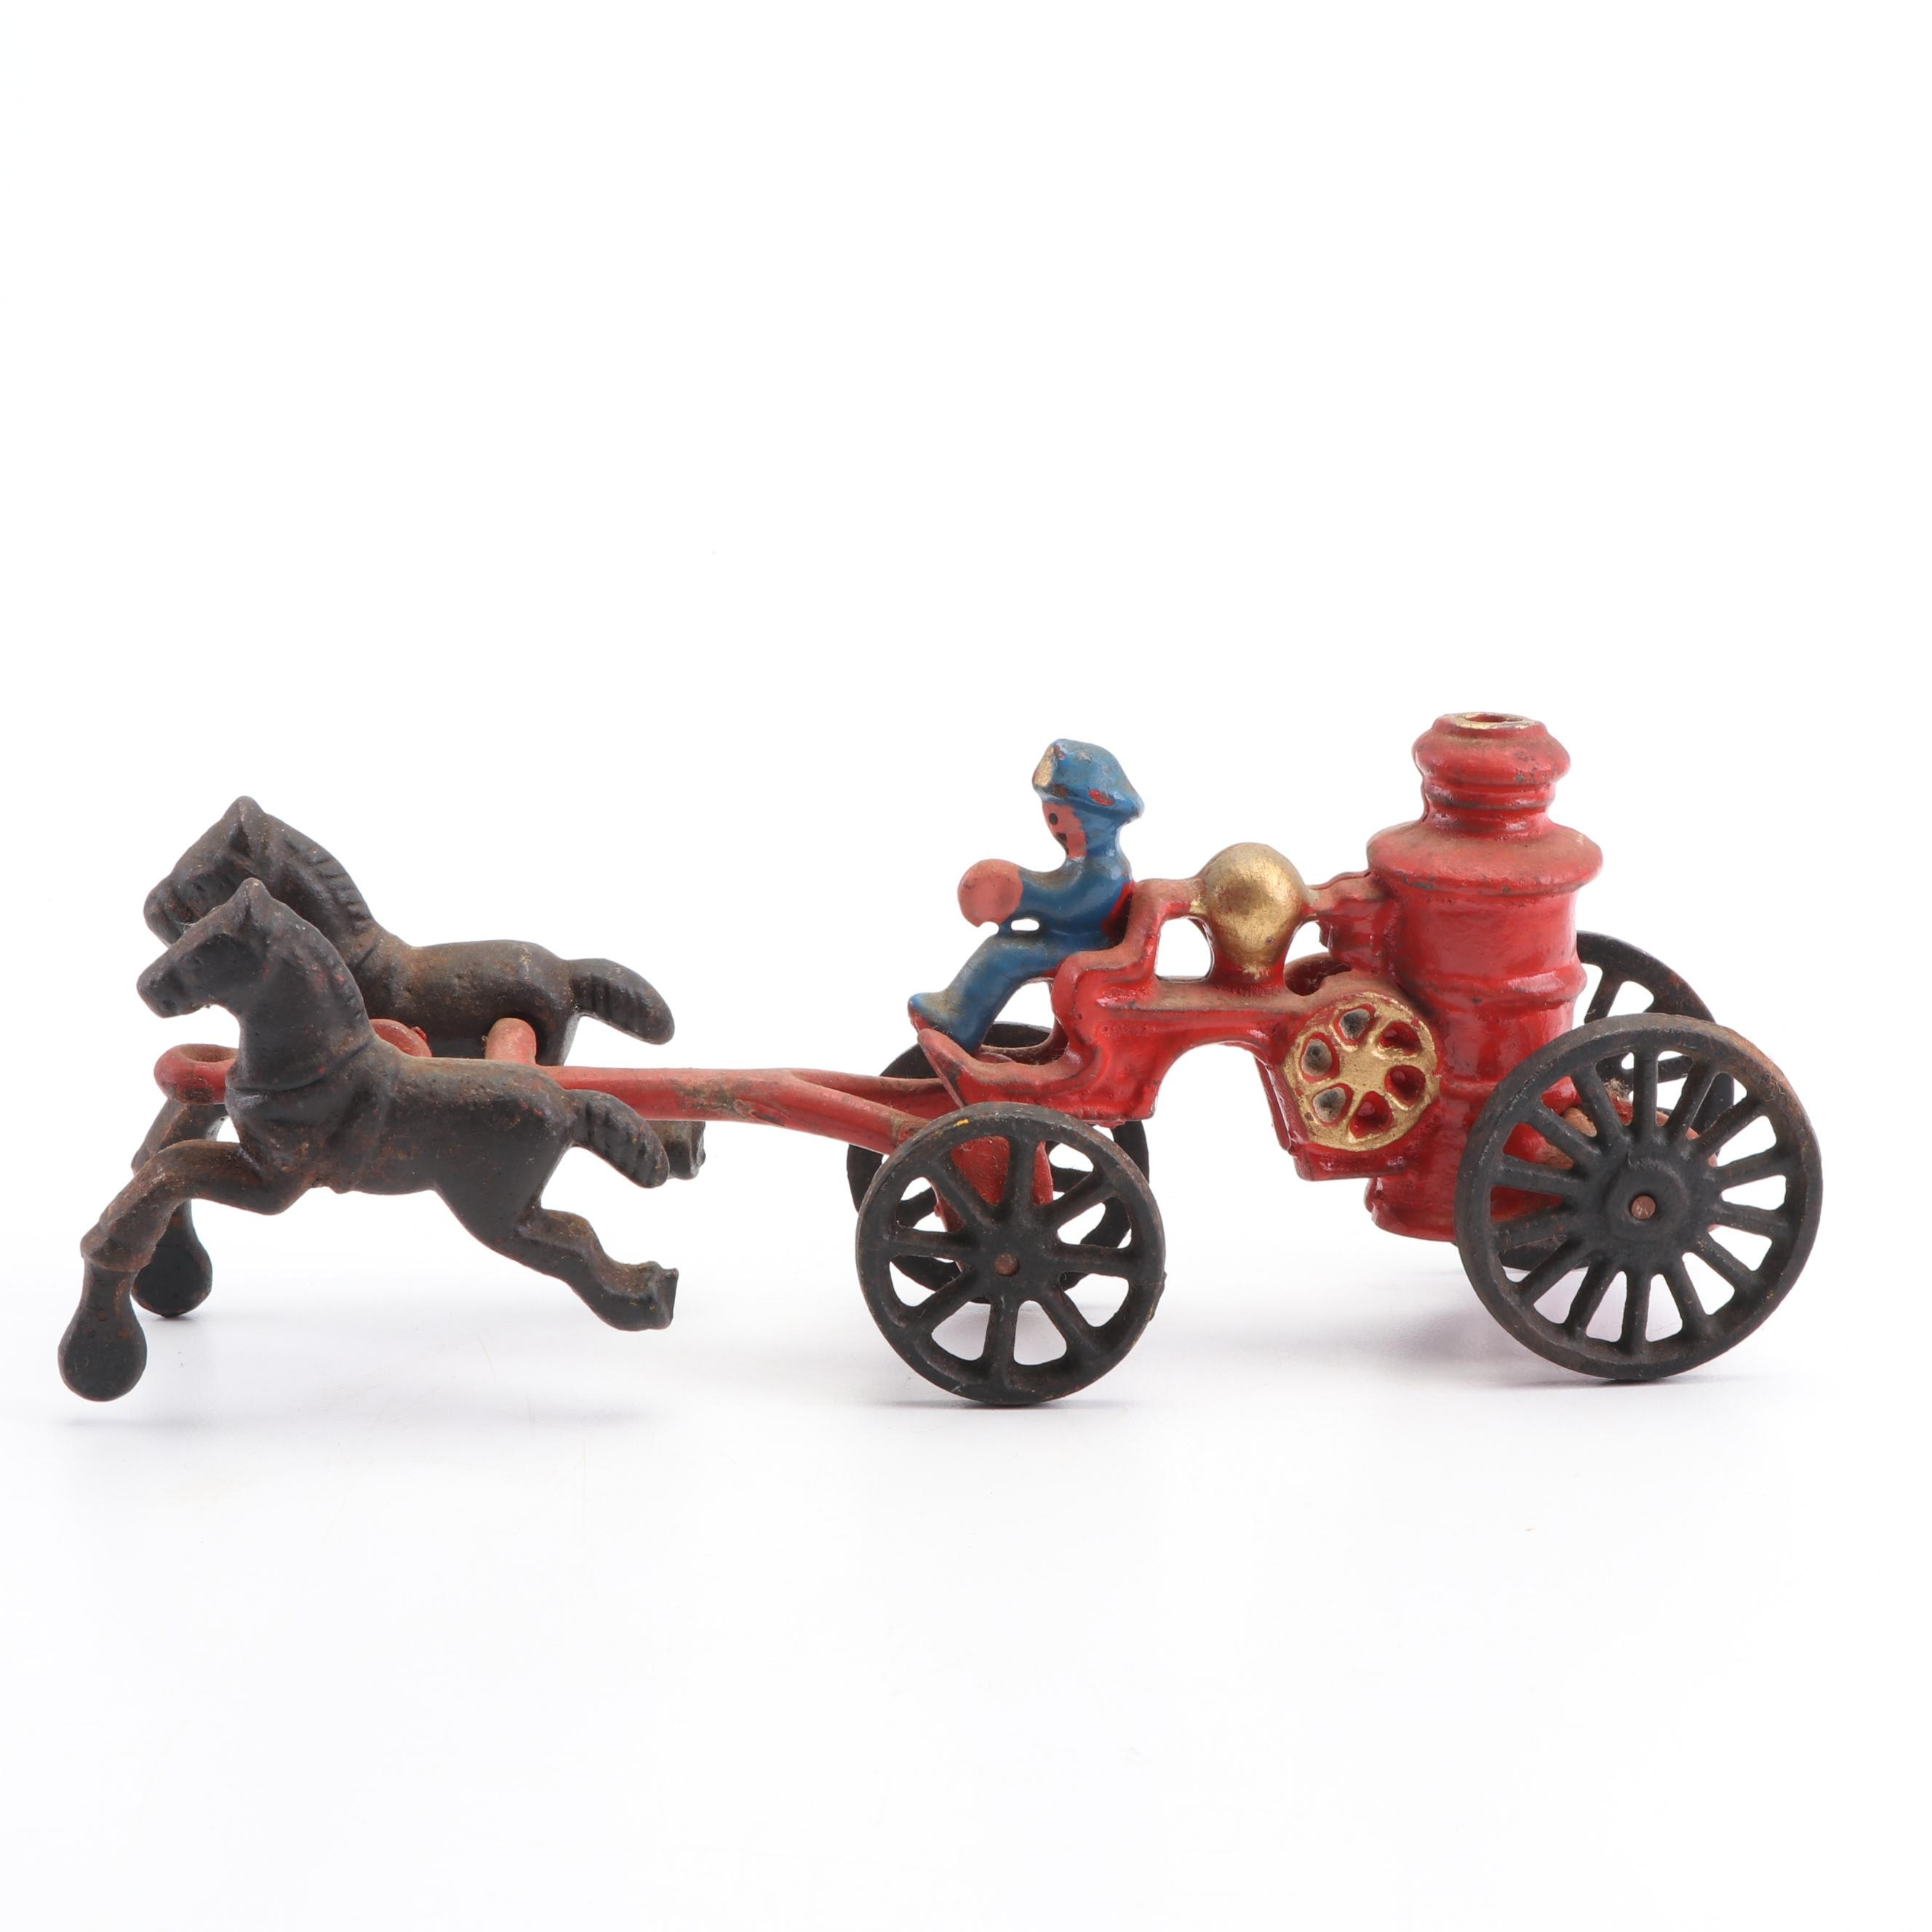 Cast Policeman and Buggy Toy, Early 20th Century